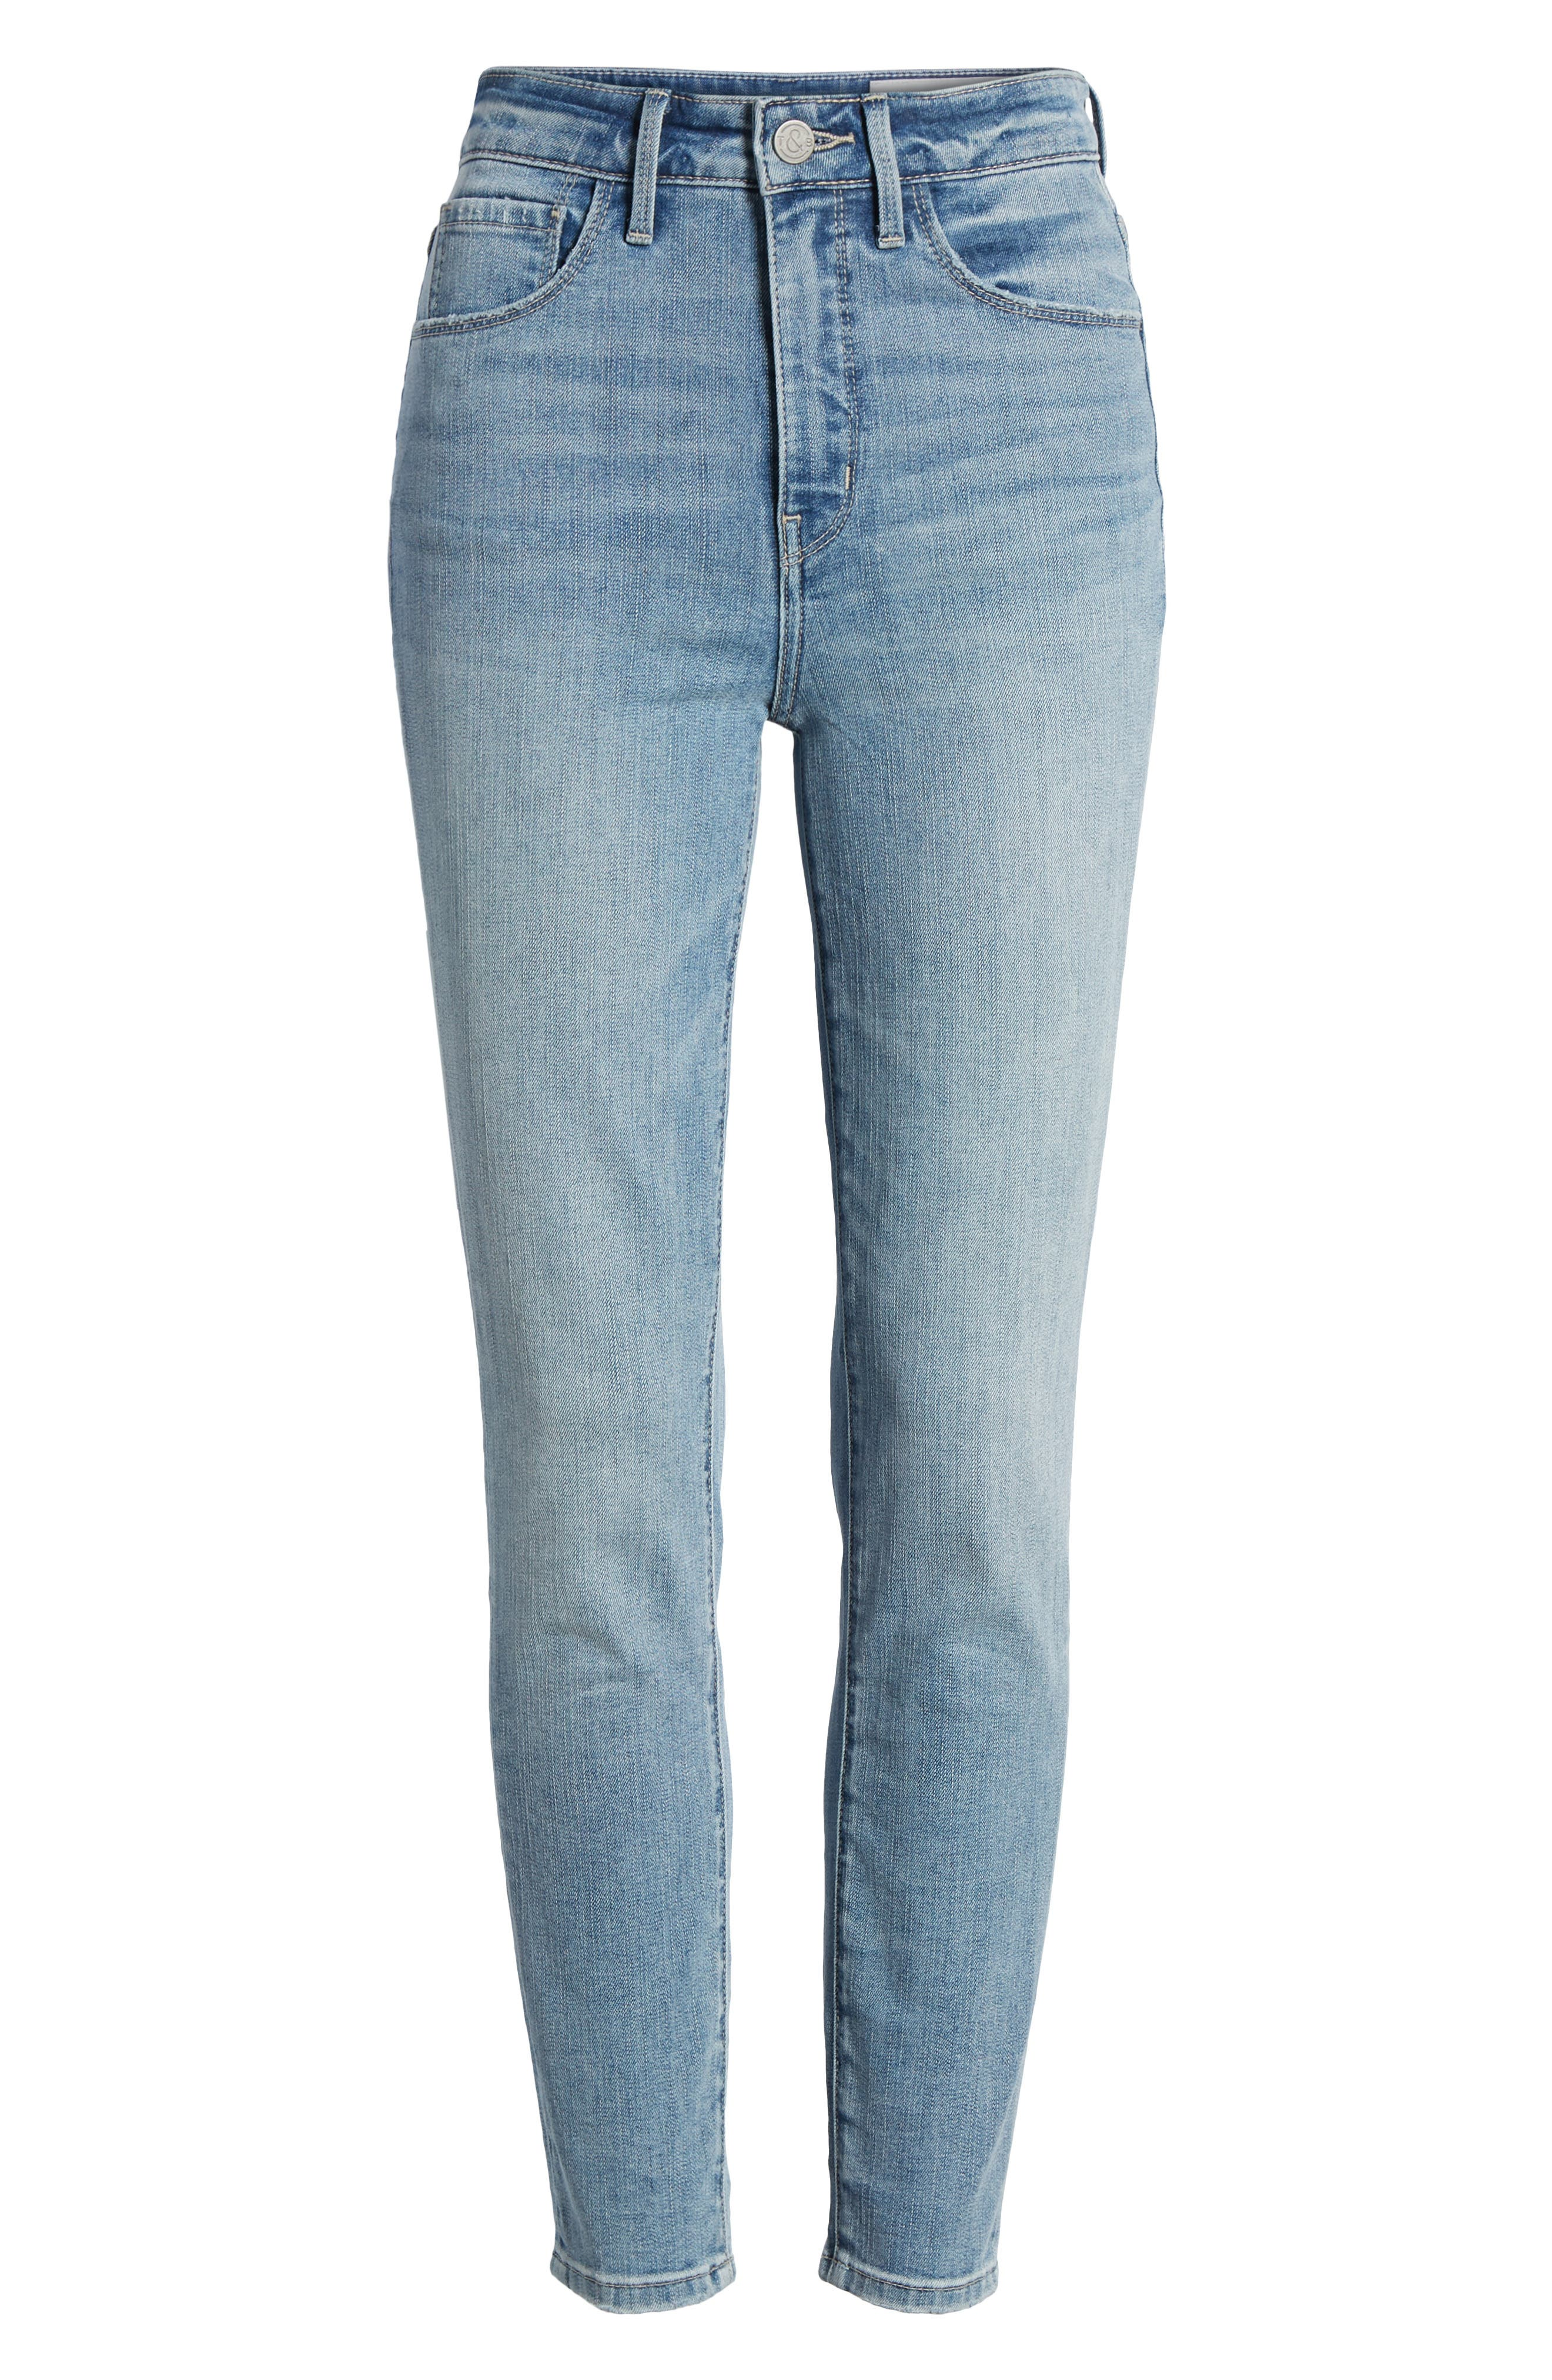 Charity High Waist Crop Skinny Jeans,                             Alternate thumbnail 7, color,                             420